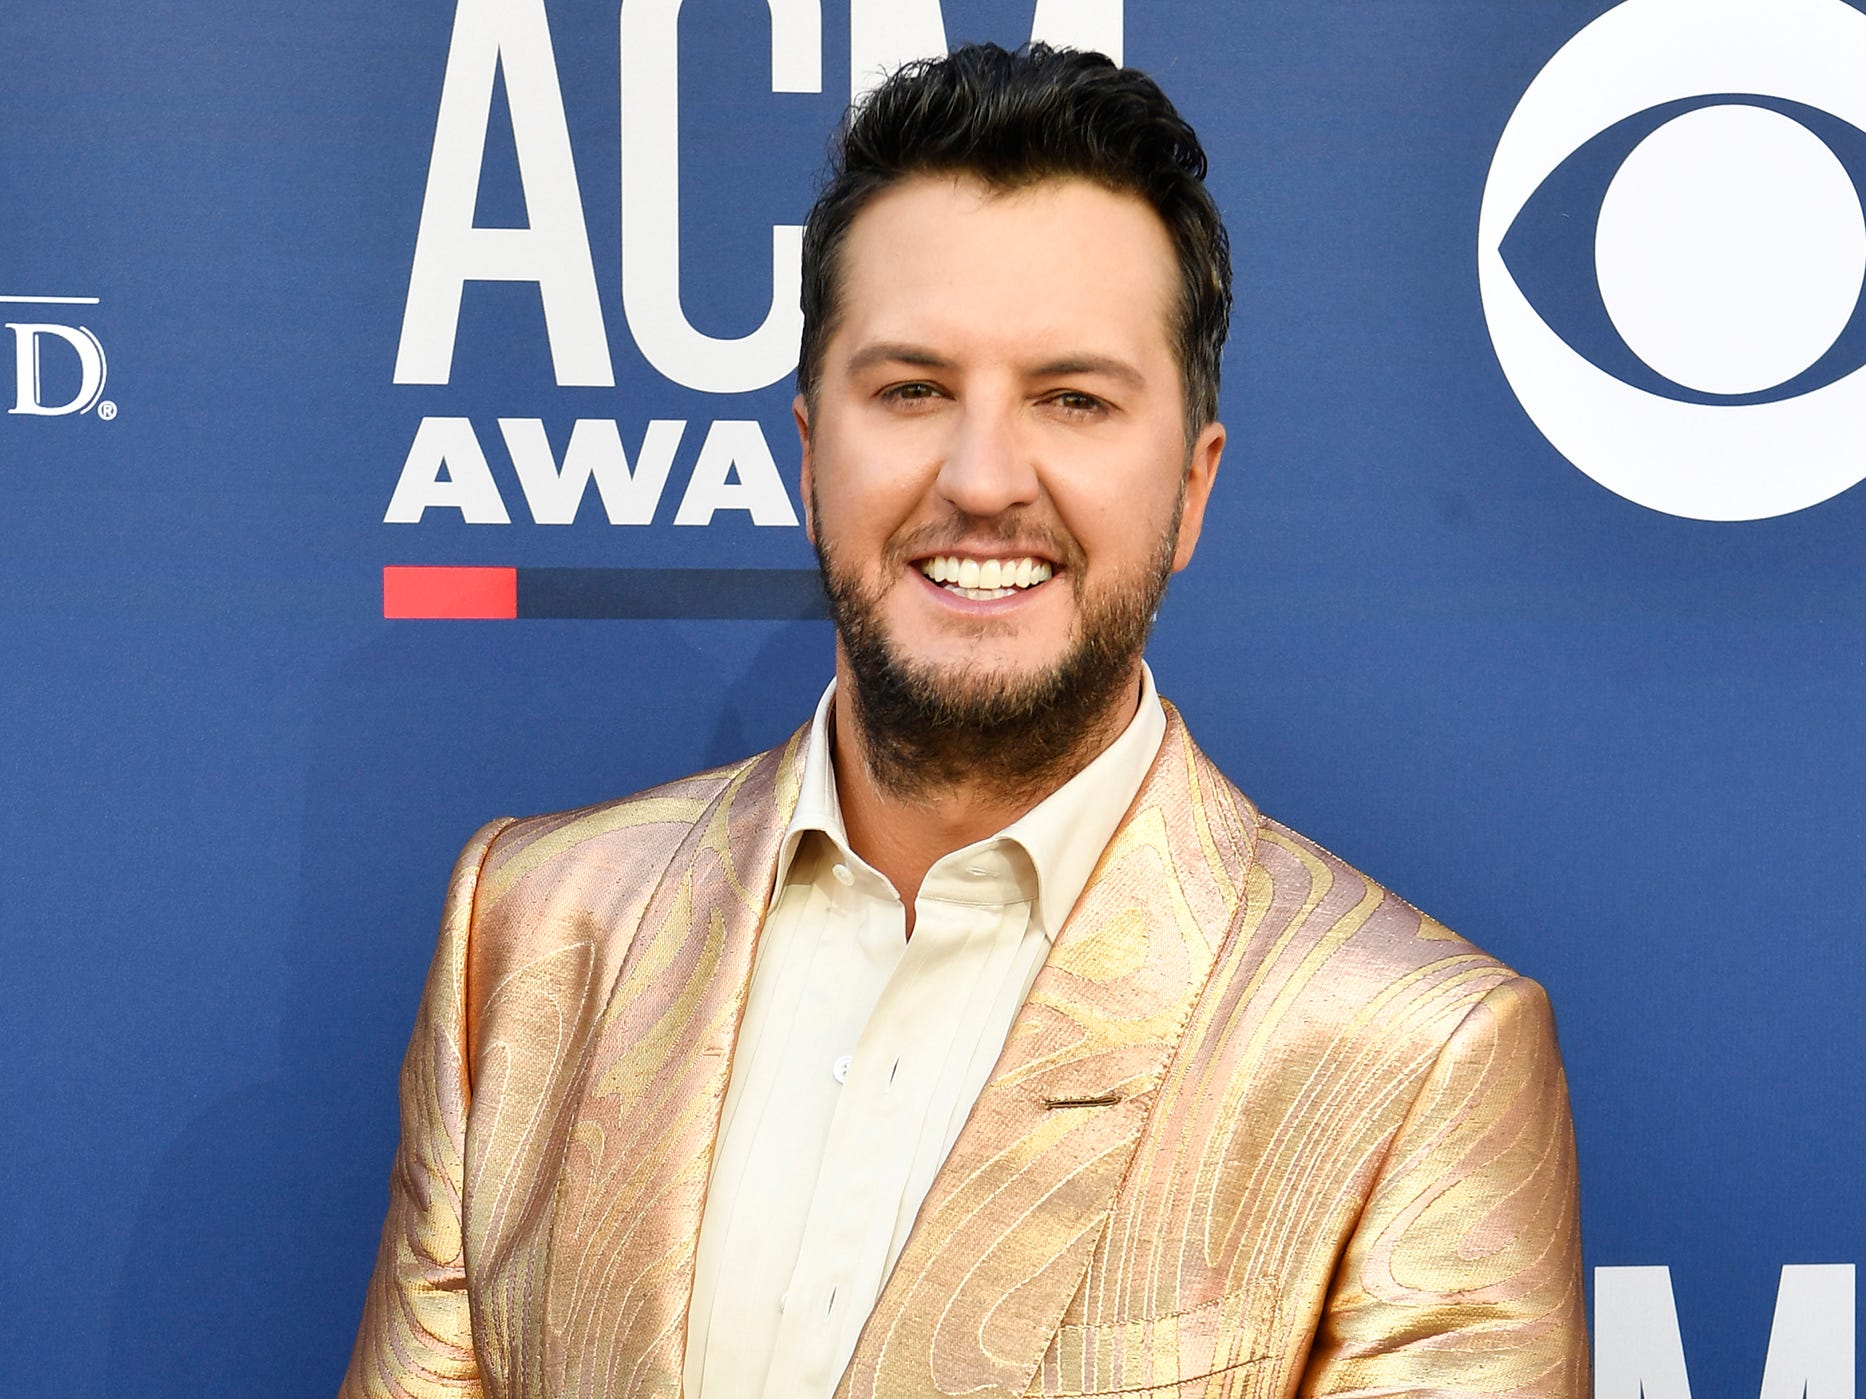 Luke Bryan walks the red carpet at the 54TH Academy of Country Music Awards Sunday, April 7, 2019, in Las Vegas, Nev.